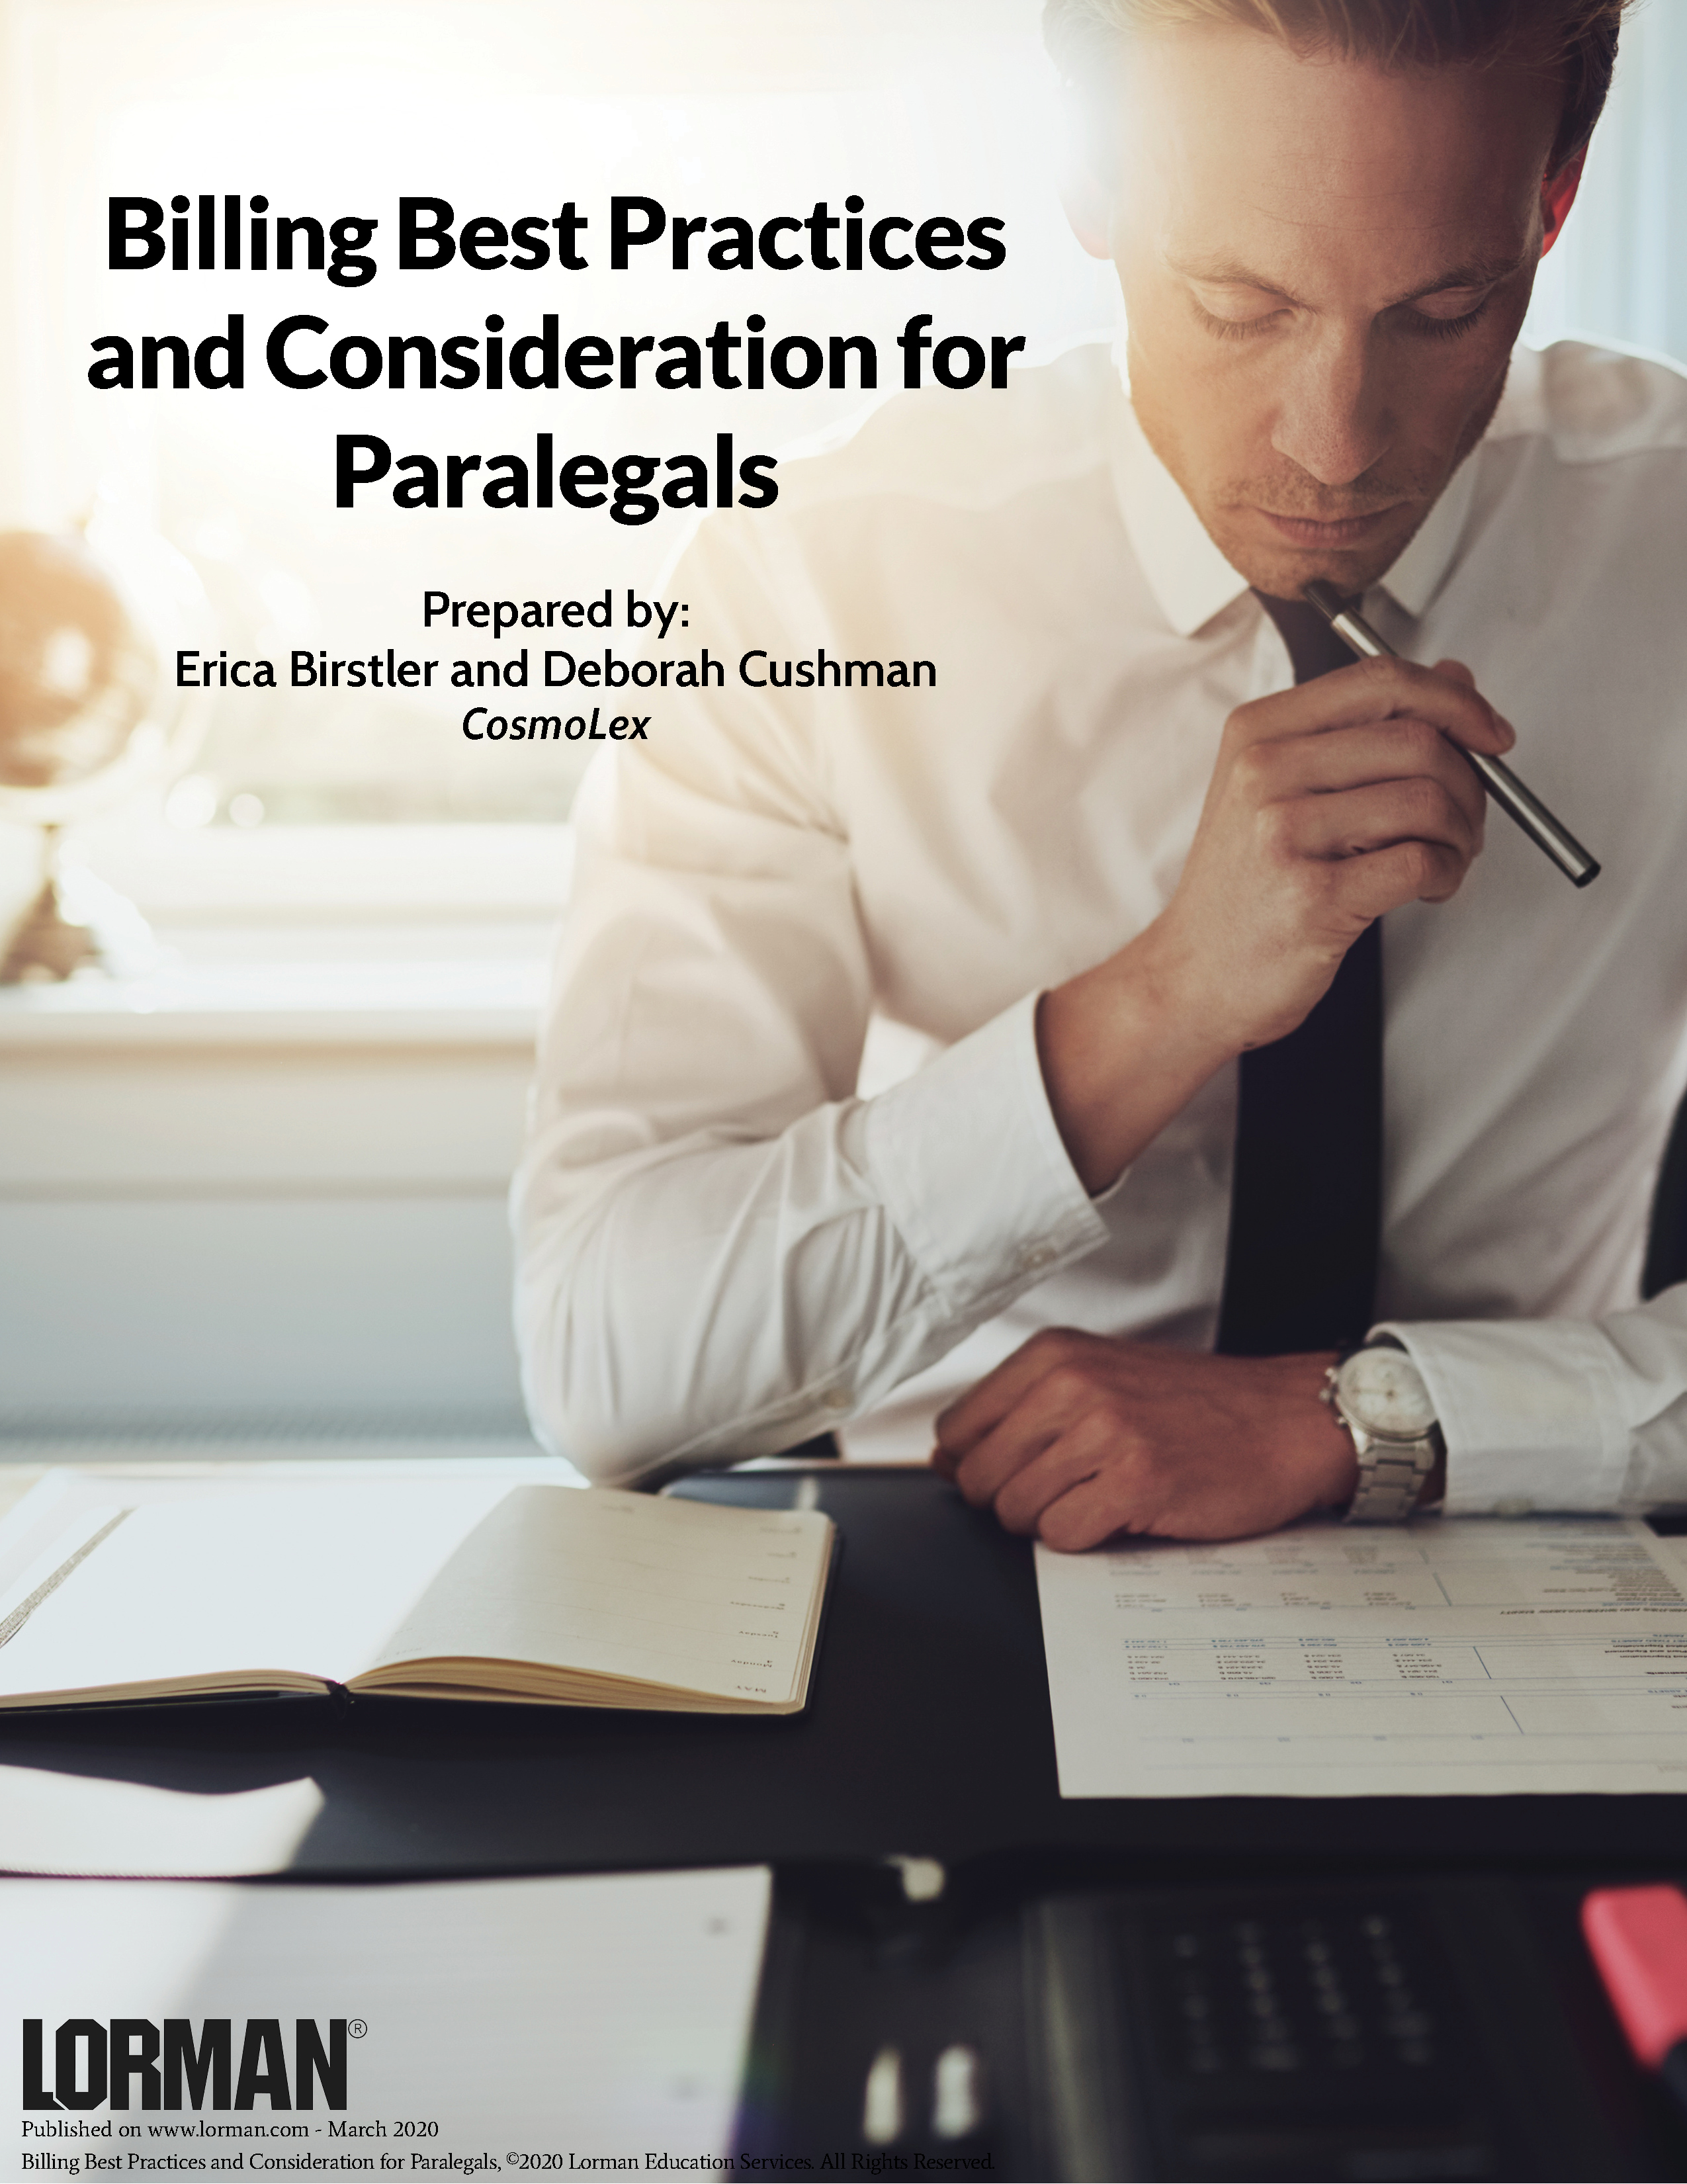 Billing Best Practices and Consideration for Paralegals